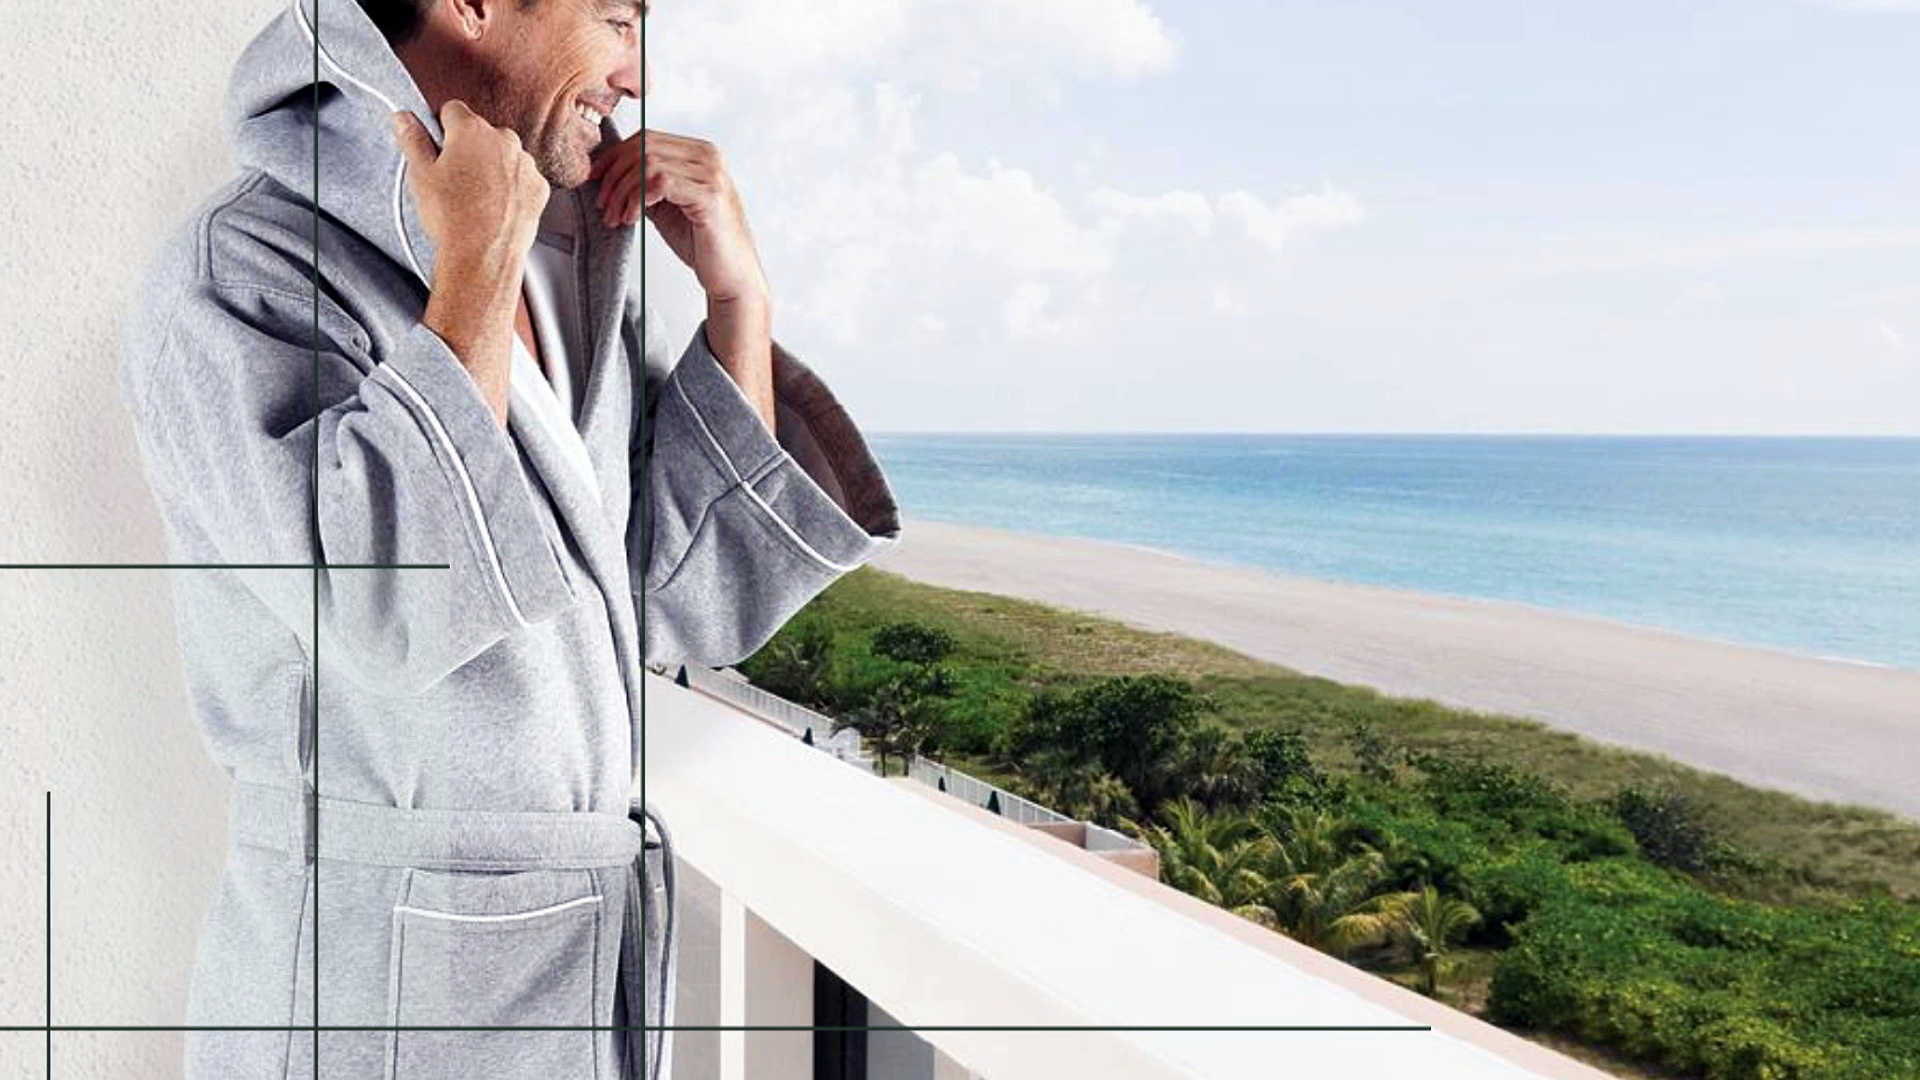 Personalized Bathrobe,Wholesale Spa Accessories,Wholesale Hospital Robes – Boca Terry